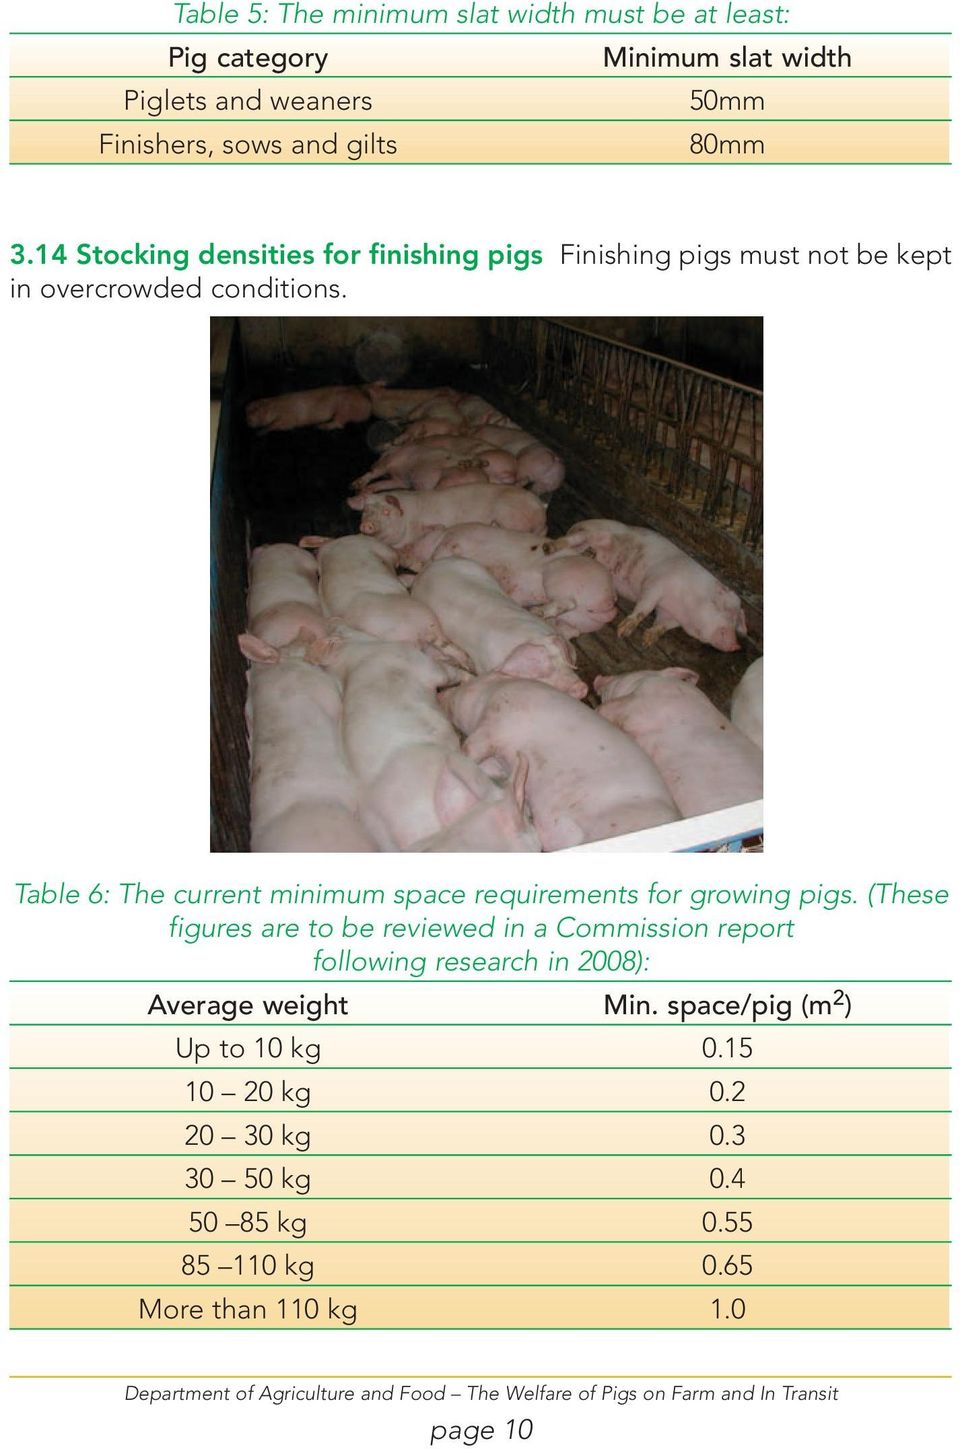 Table 6: The current minimum space requirements for growing pigs.